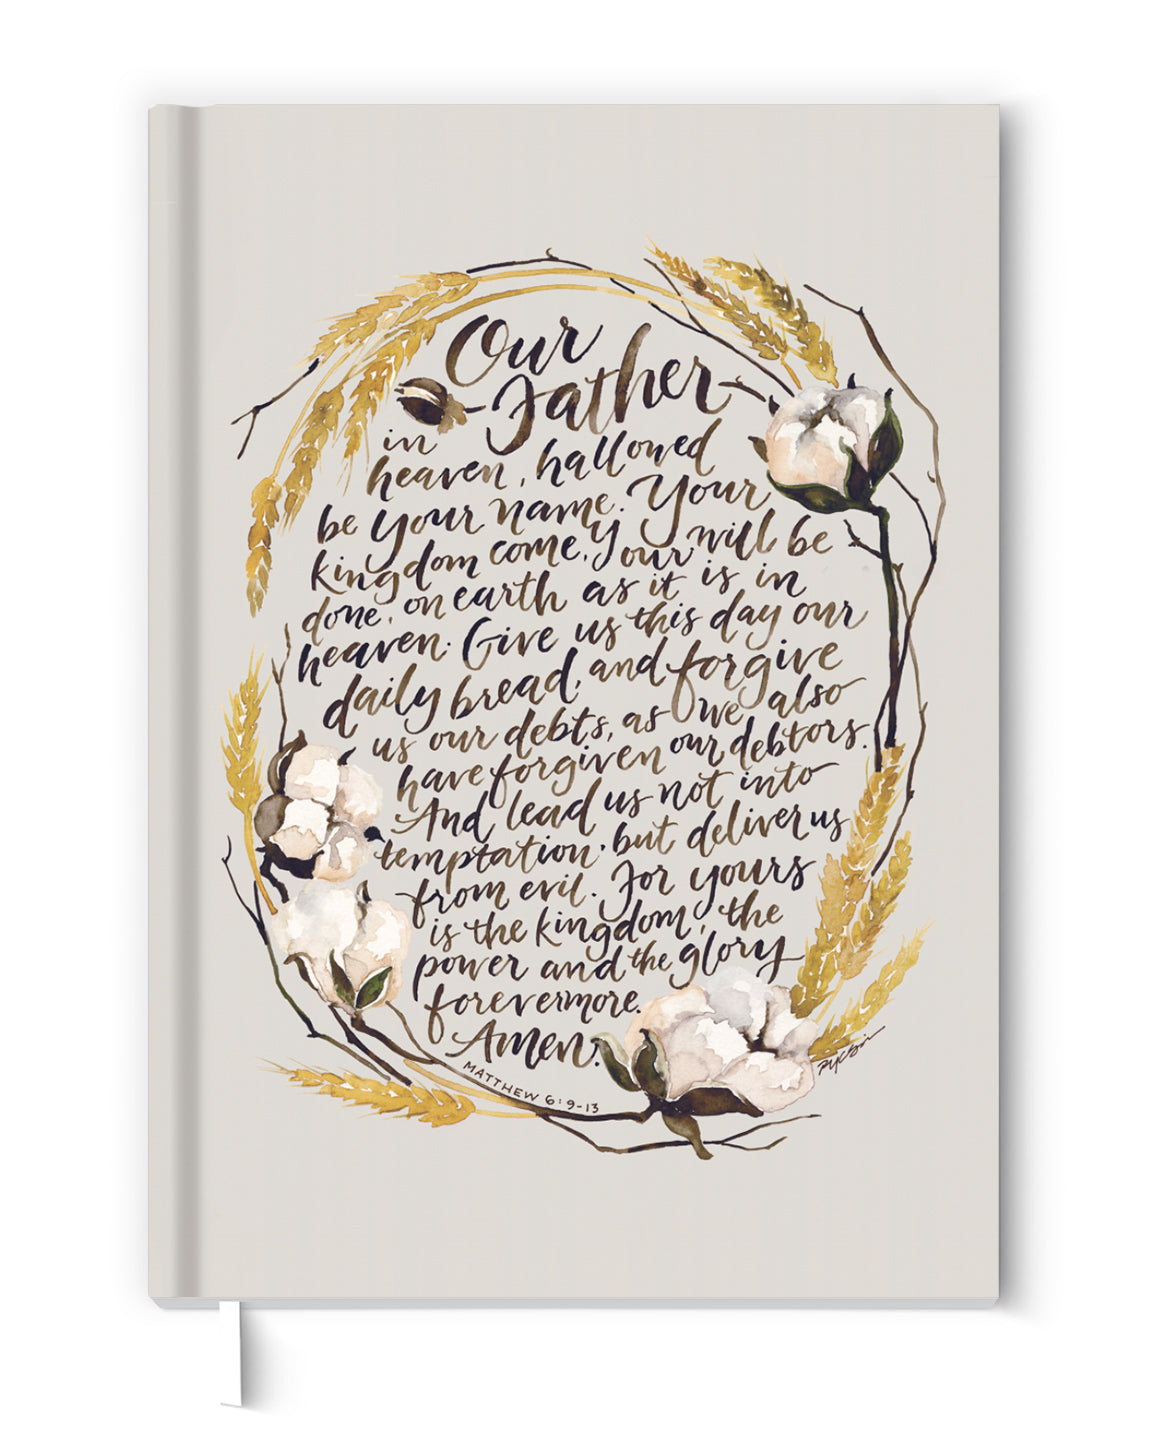 d50d1313ea81f The Lord's Prayer Journal - GraceLaced